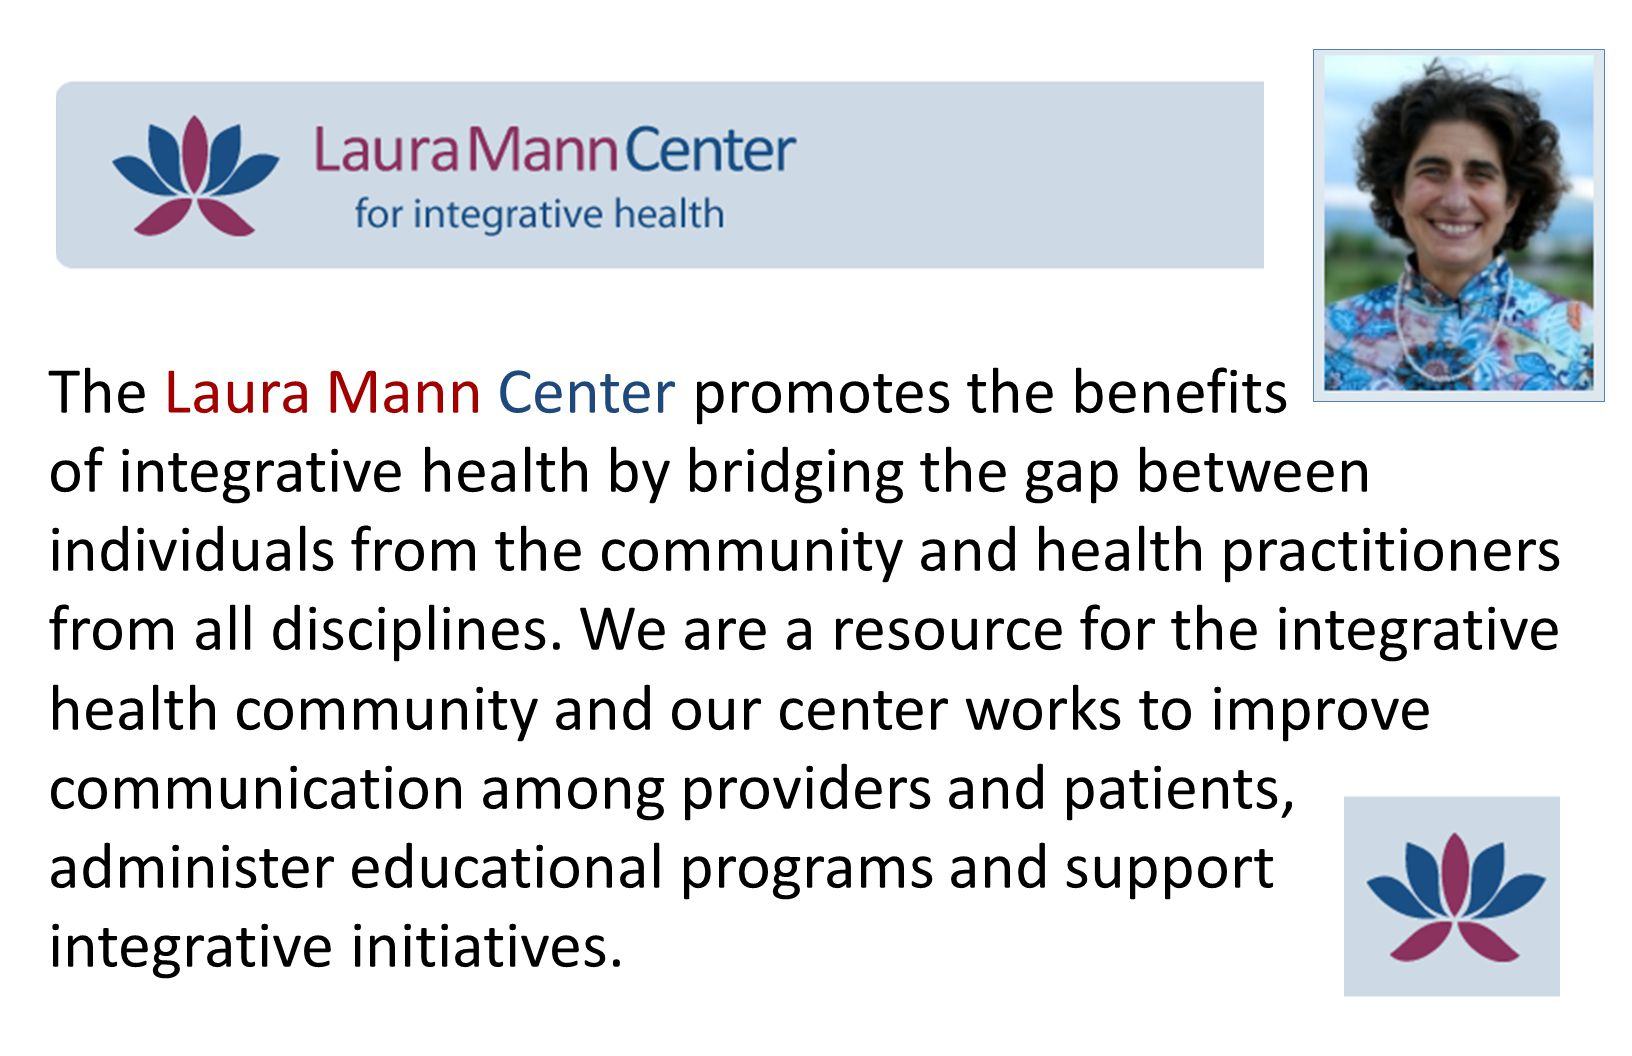 The Laura Mann Center promotes the benefits of integrative health by bridging the gap between individuals from the community and health practitioners from all disciplines.